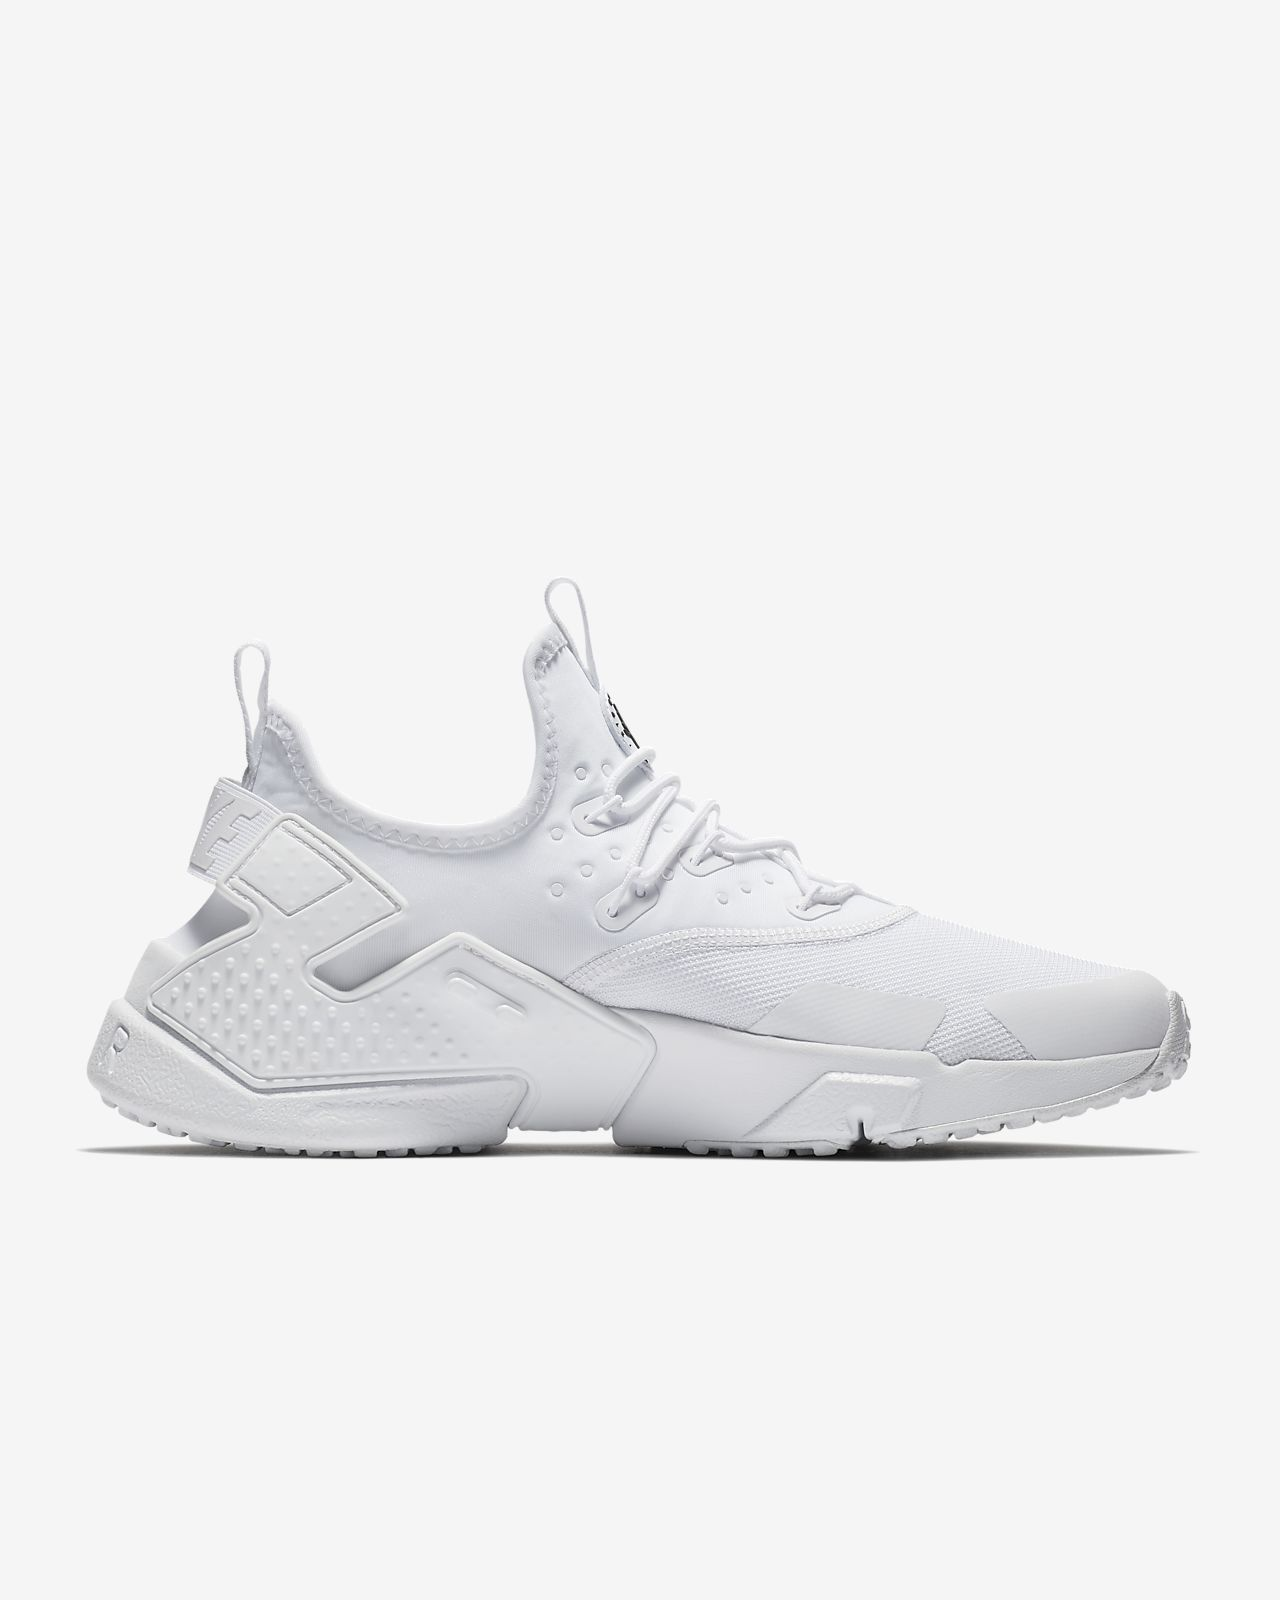 official photos aaf2c 212b8 ... Nike Air Huarache Drift Men s Shoe